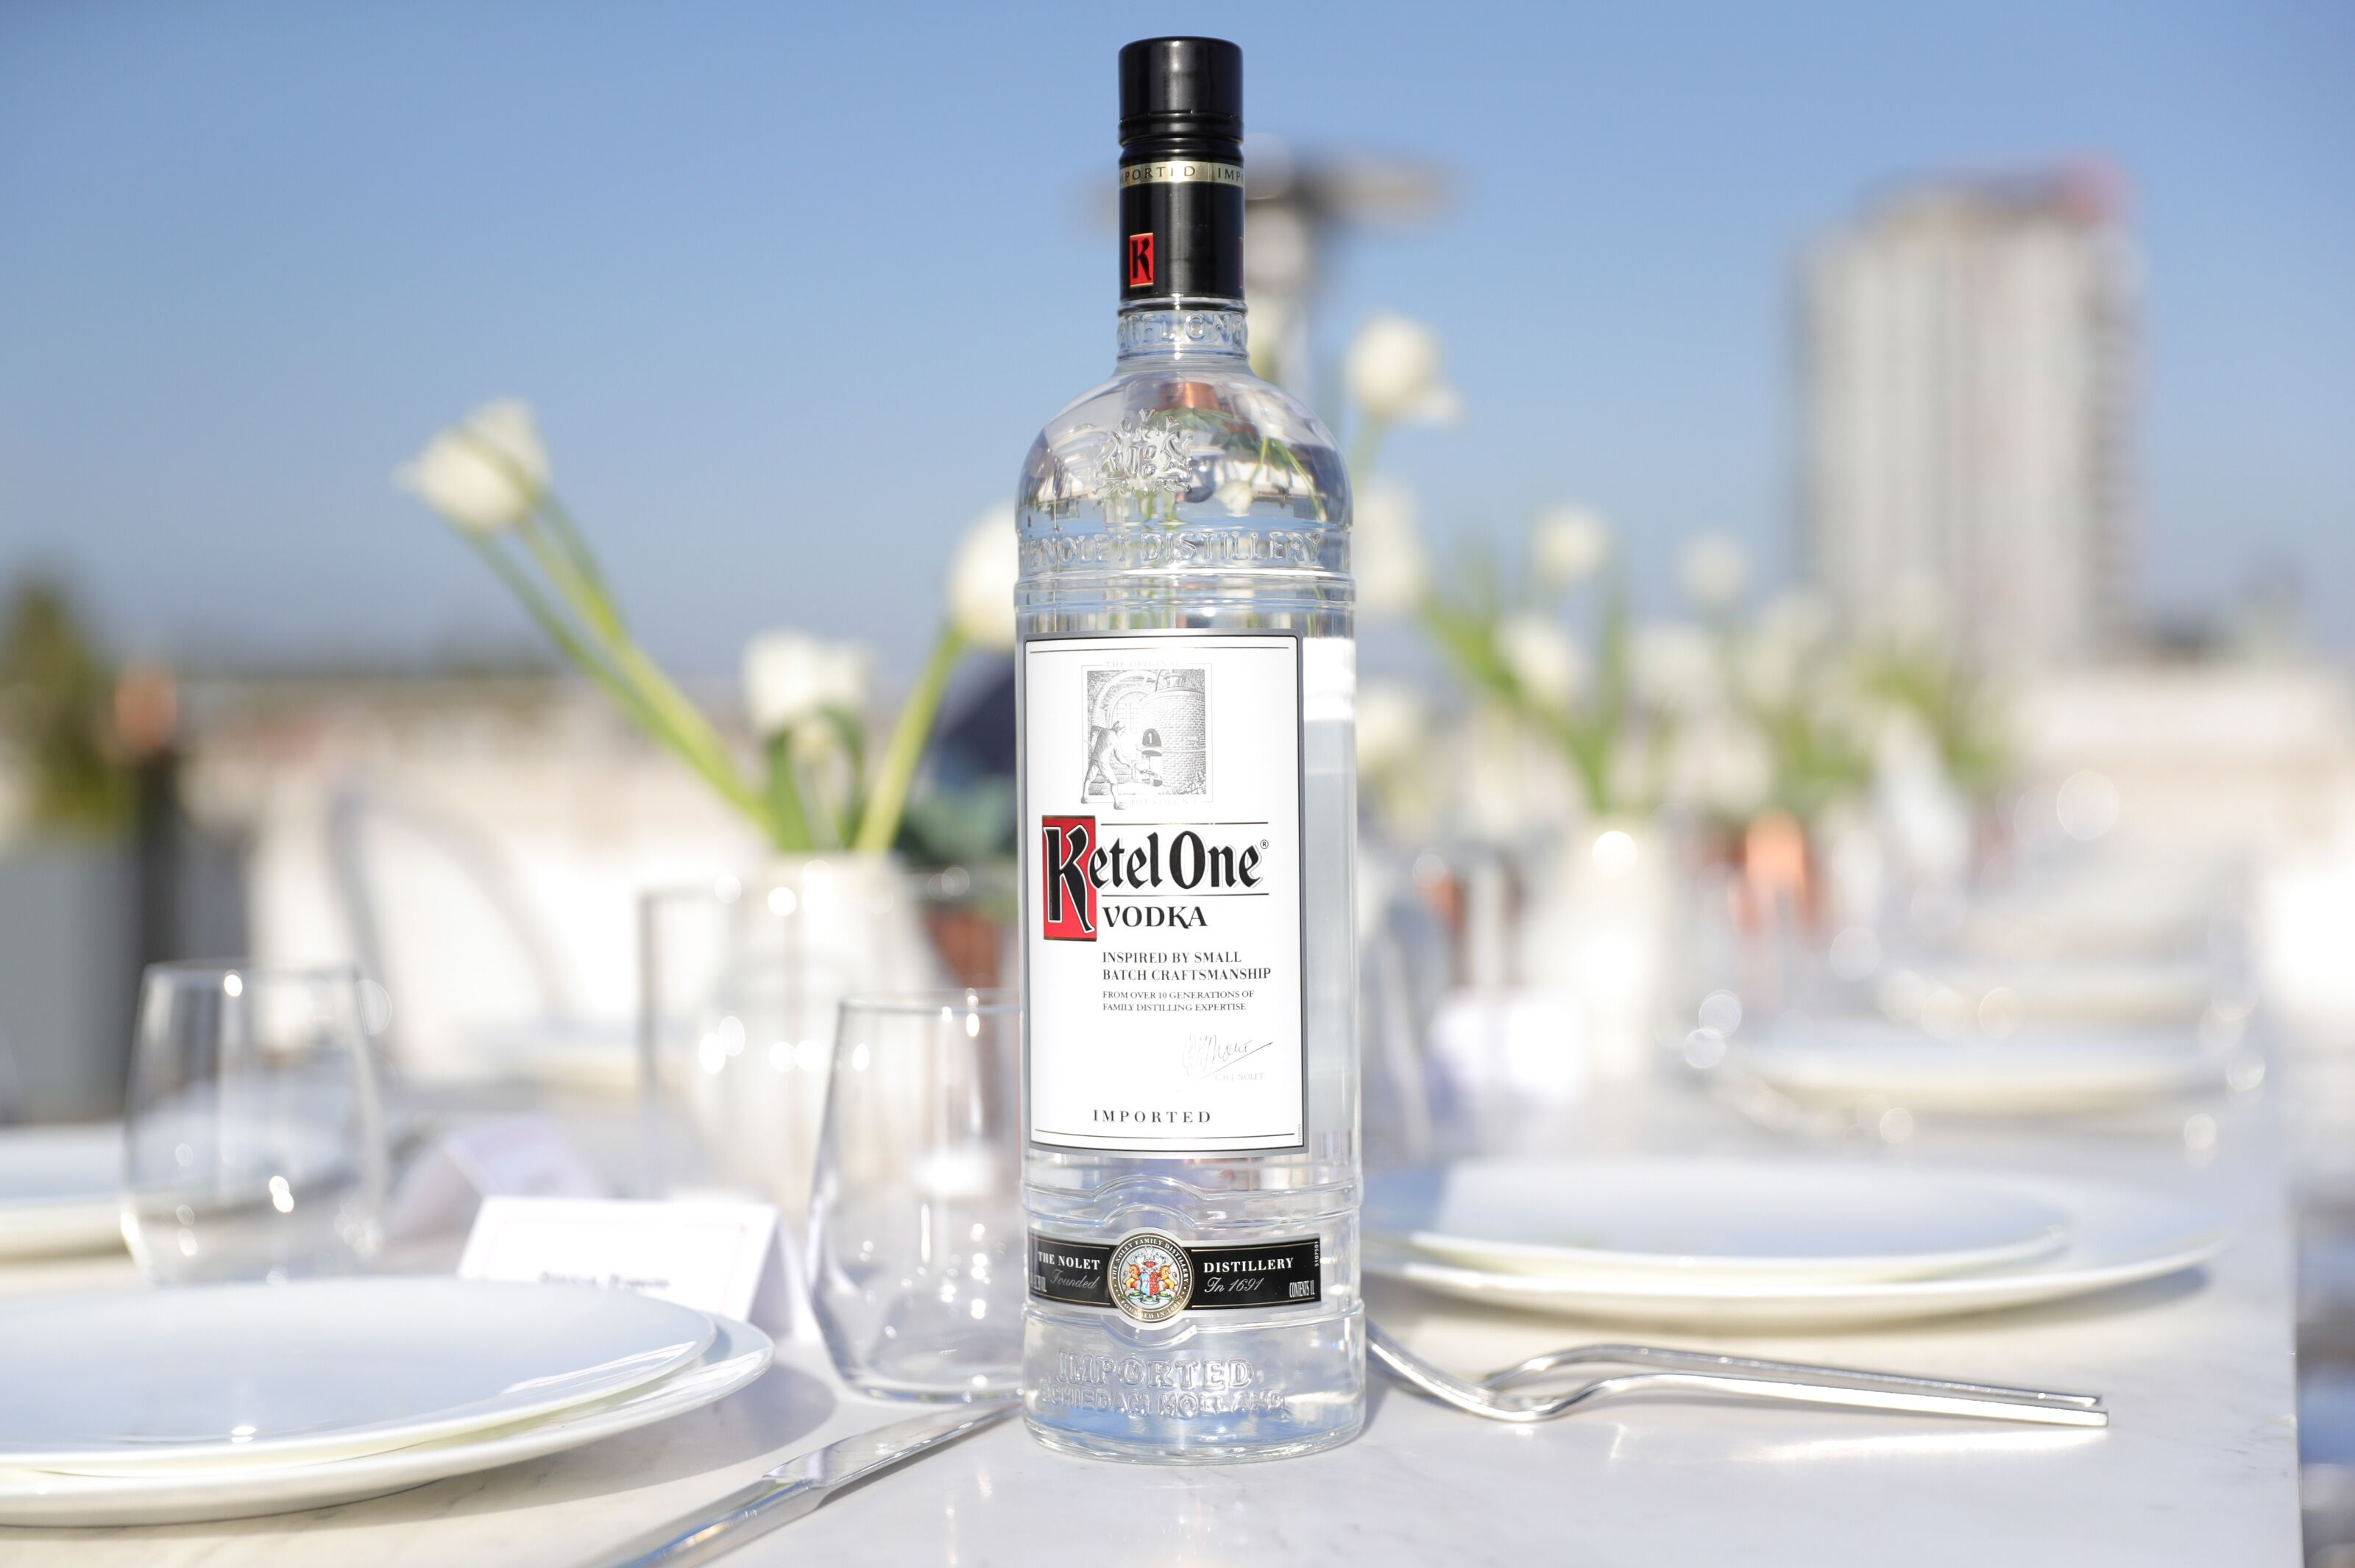 Vodka Martini: Fun facts that might surprise you about James Bond's favorite cocktail